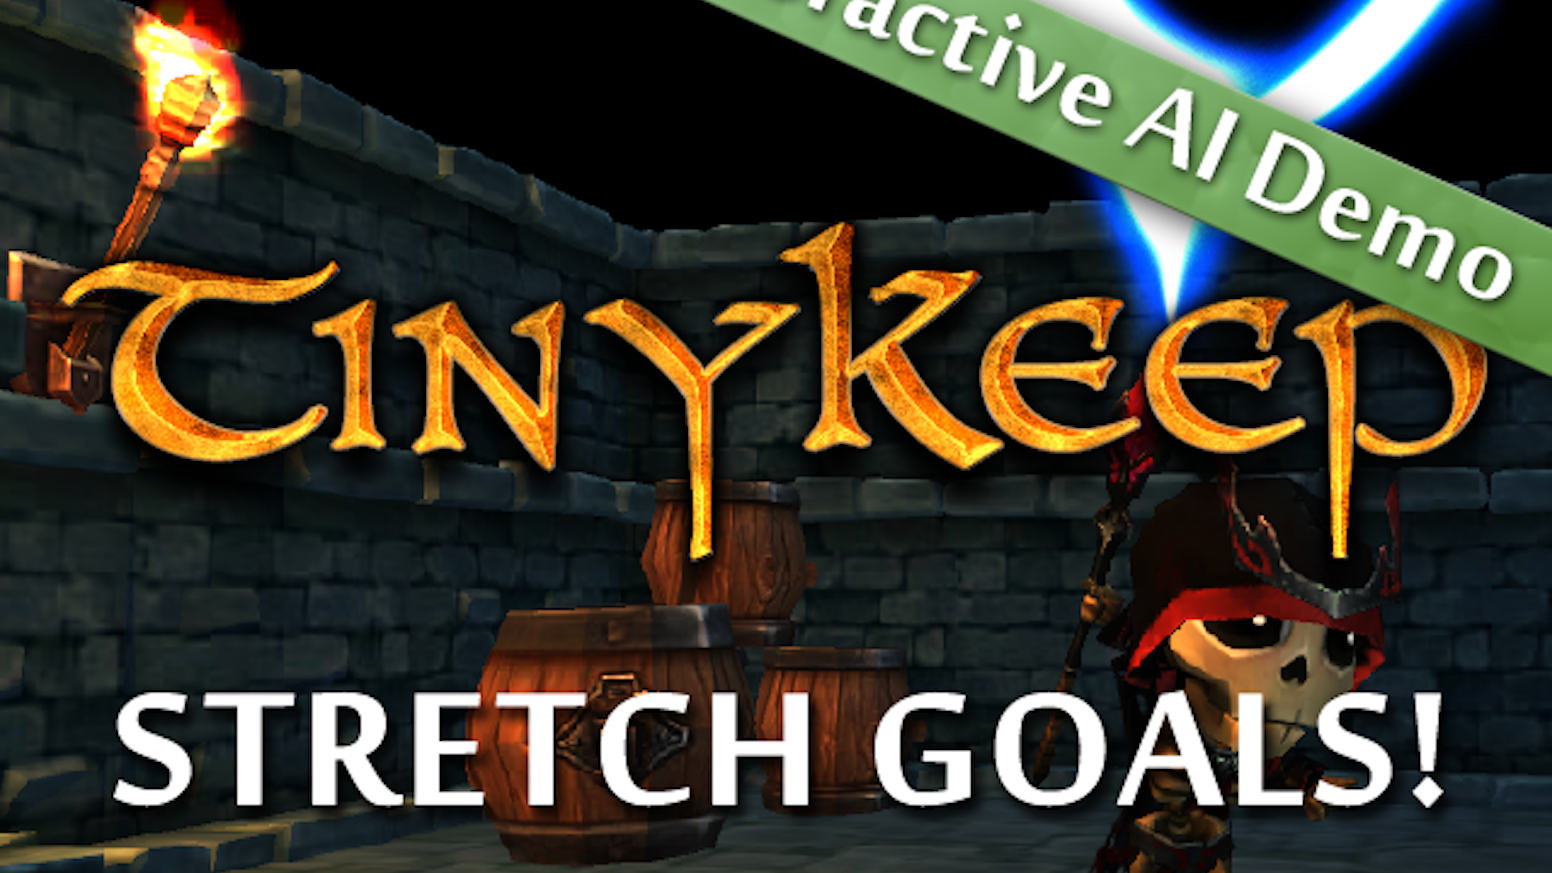 Master the frantic physics-based combat, lure enemies into traps or make them fight each other for dominance in this procedurally generated dungeon escape game.